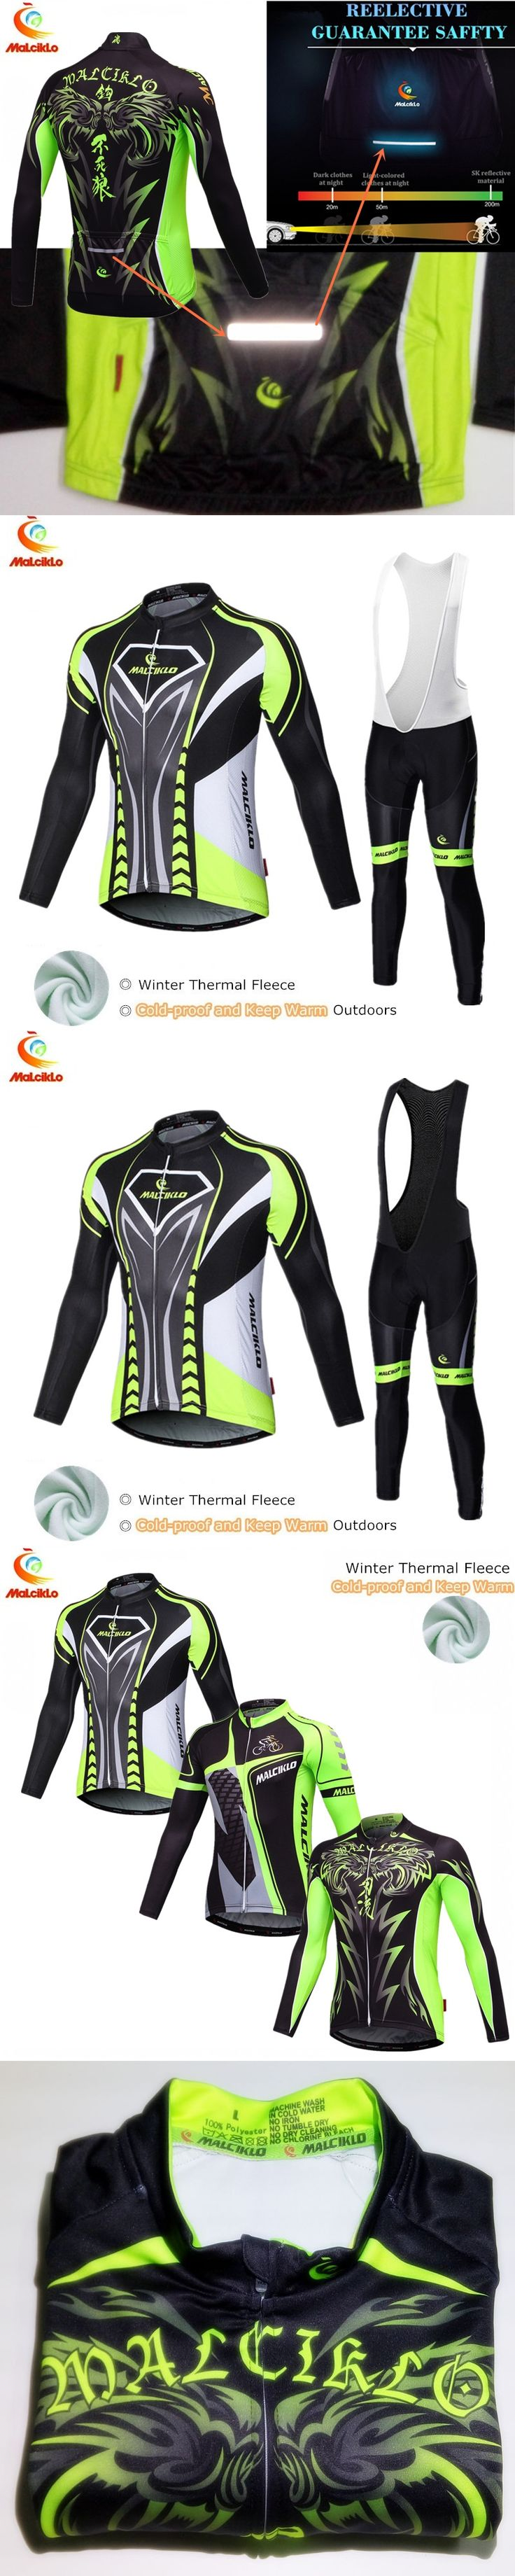 Malciklo Pro cycling jersey winter thermal fleece uniform maillot ciclismo invierno bike mtb winter cycling clothing men